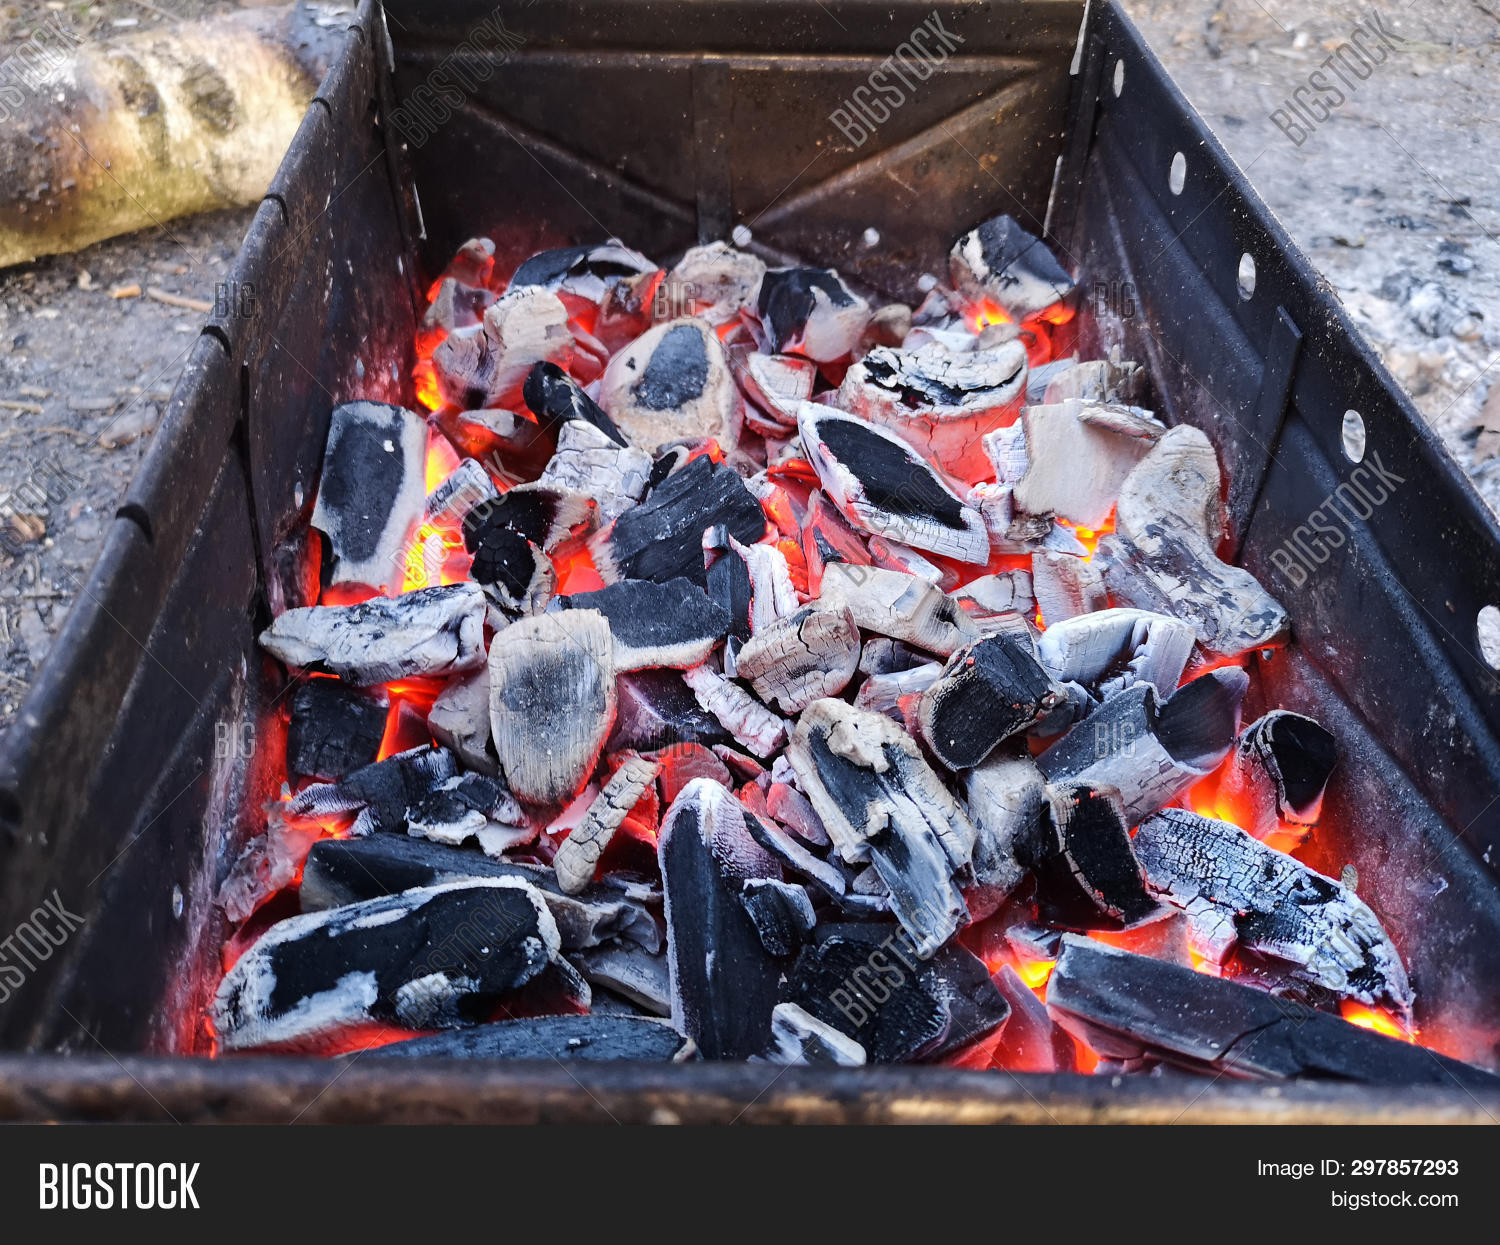 4k,adventure,ash,background,barbecue,barbeque,bbq,beautiful,black,blaze,blazing,bonfire,burn,camping,charcoal,closeup,coal,cook,cooking,dangerous,delicious,energy,fire,fireplace,food,garden,glowing,grass,grate,green,grill,grilling,heat,hot,inferno,lifestyle,meal,meat,metal,nature,outdoor,party,picnic,red,relax,ribs,smoke,steel,summer,wood